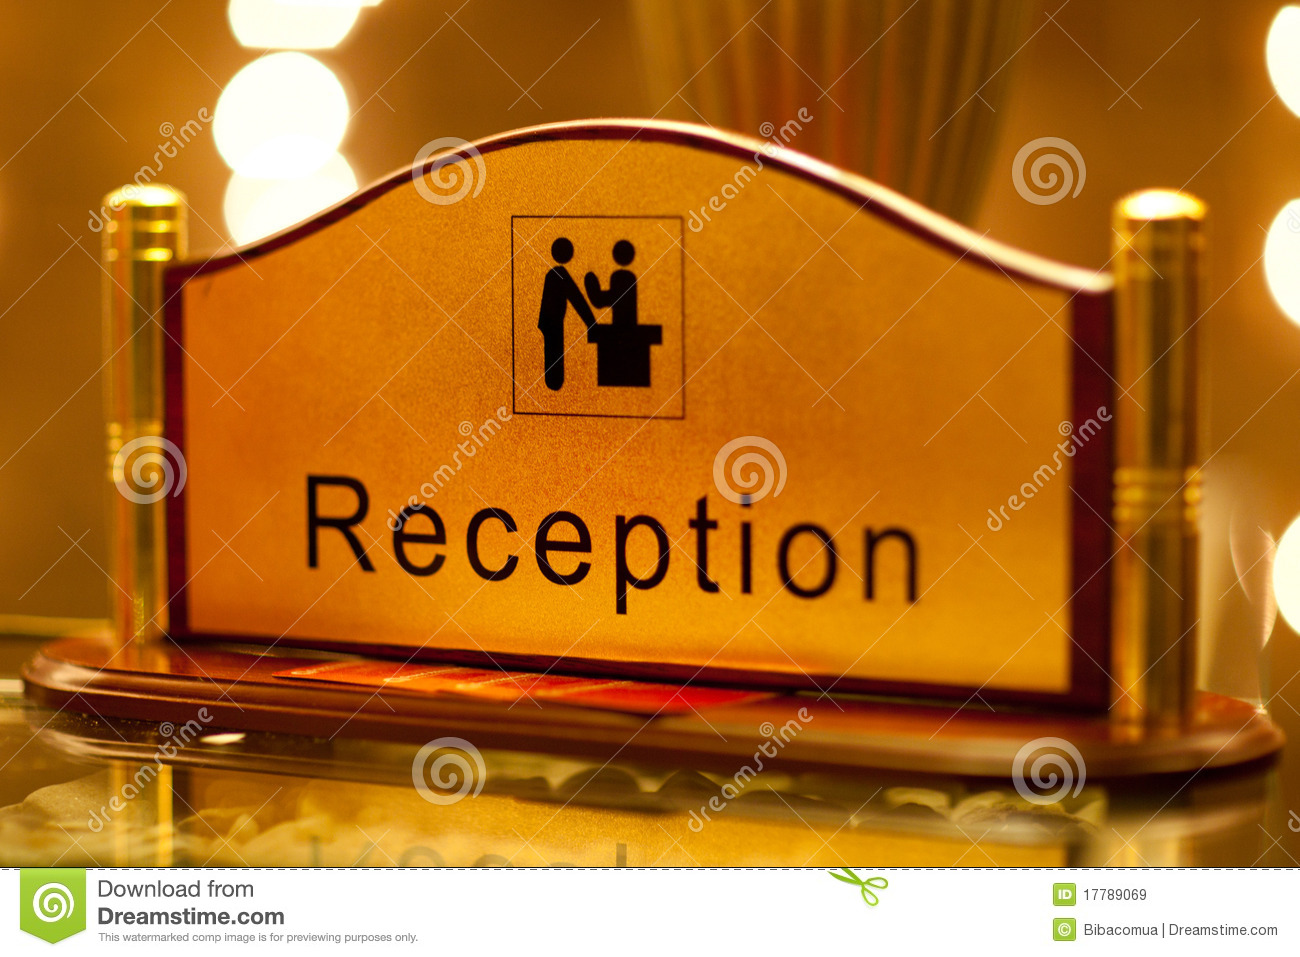 Reception Sign Royalty Free Stock Images  Image 17789069